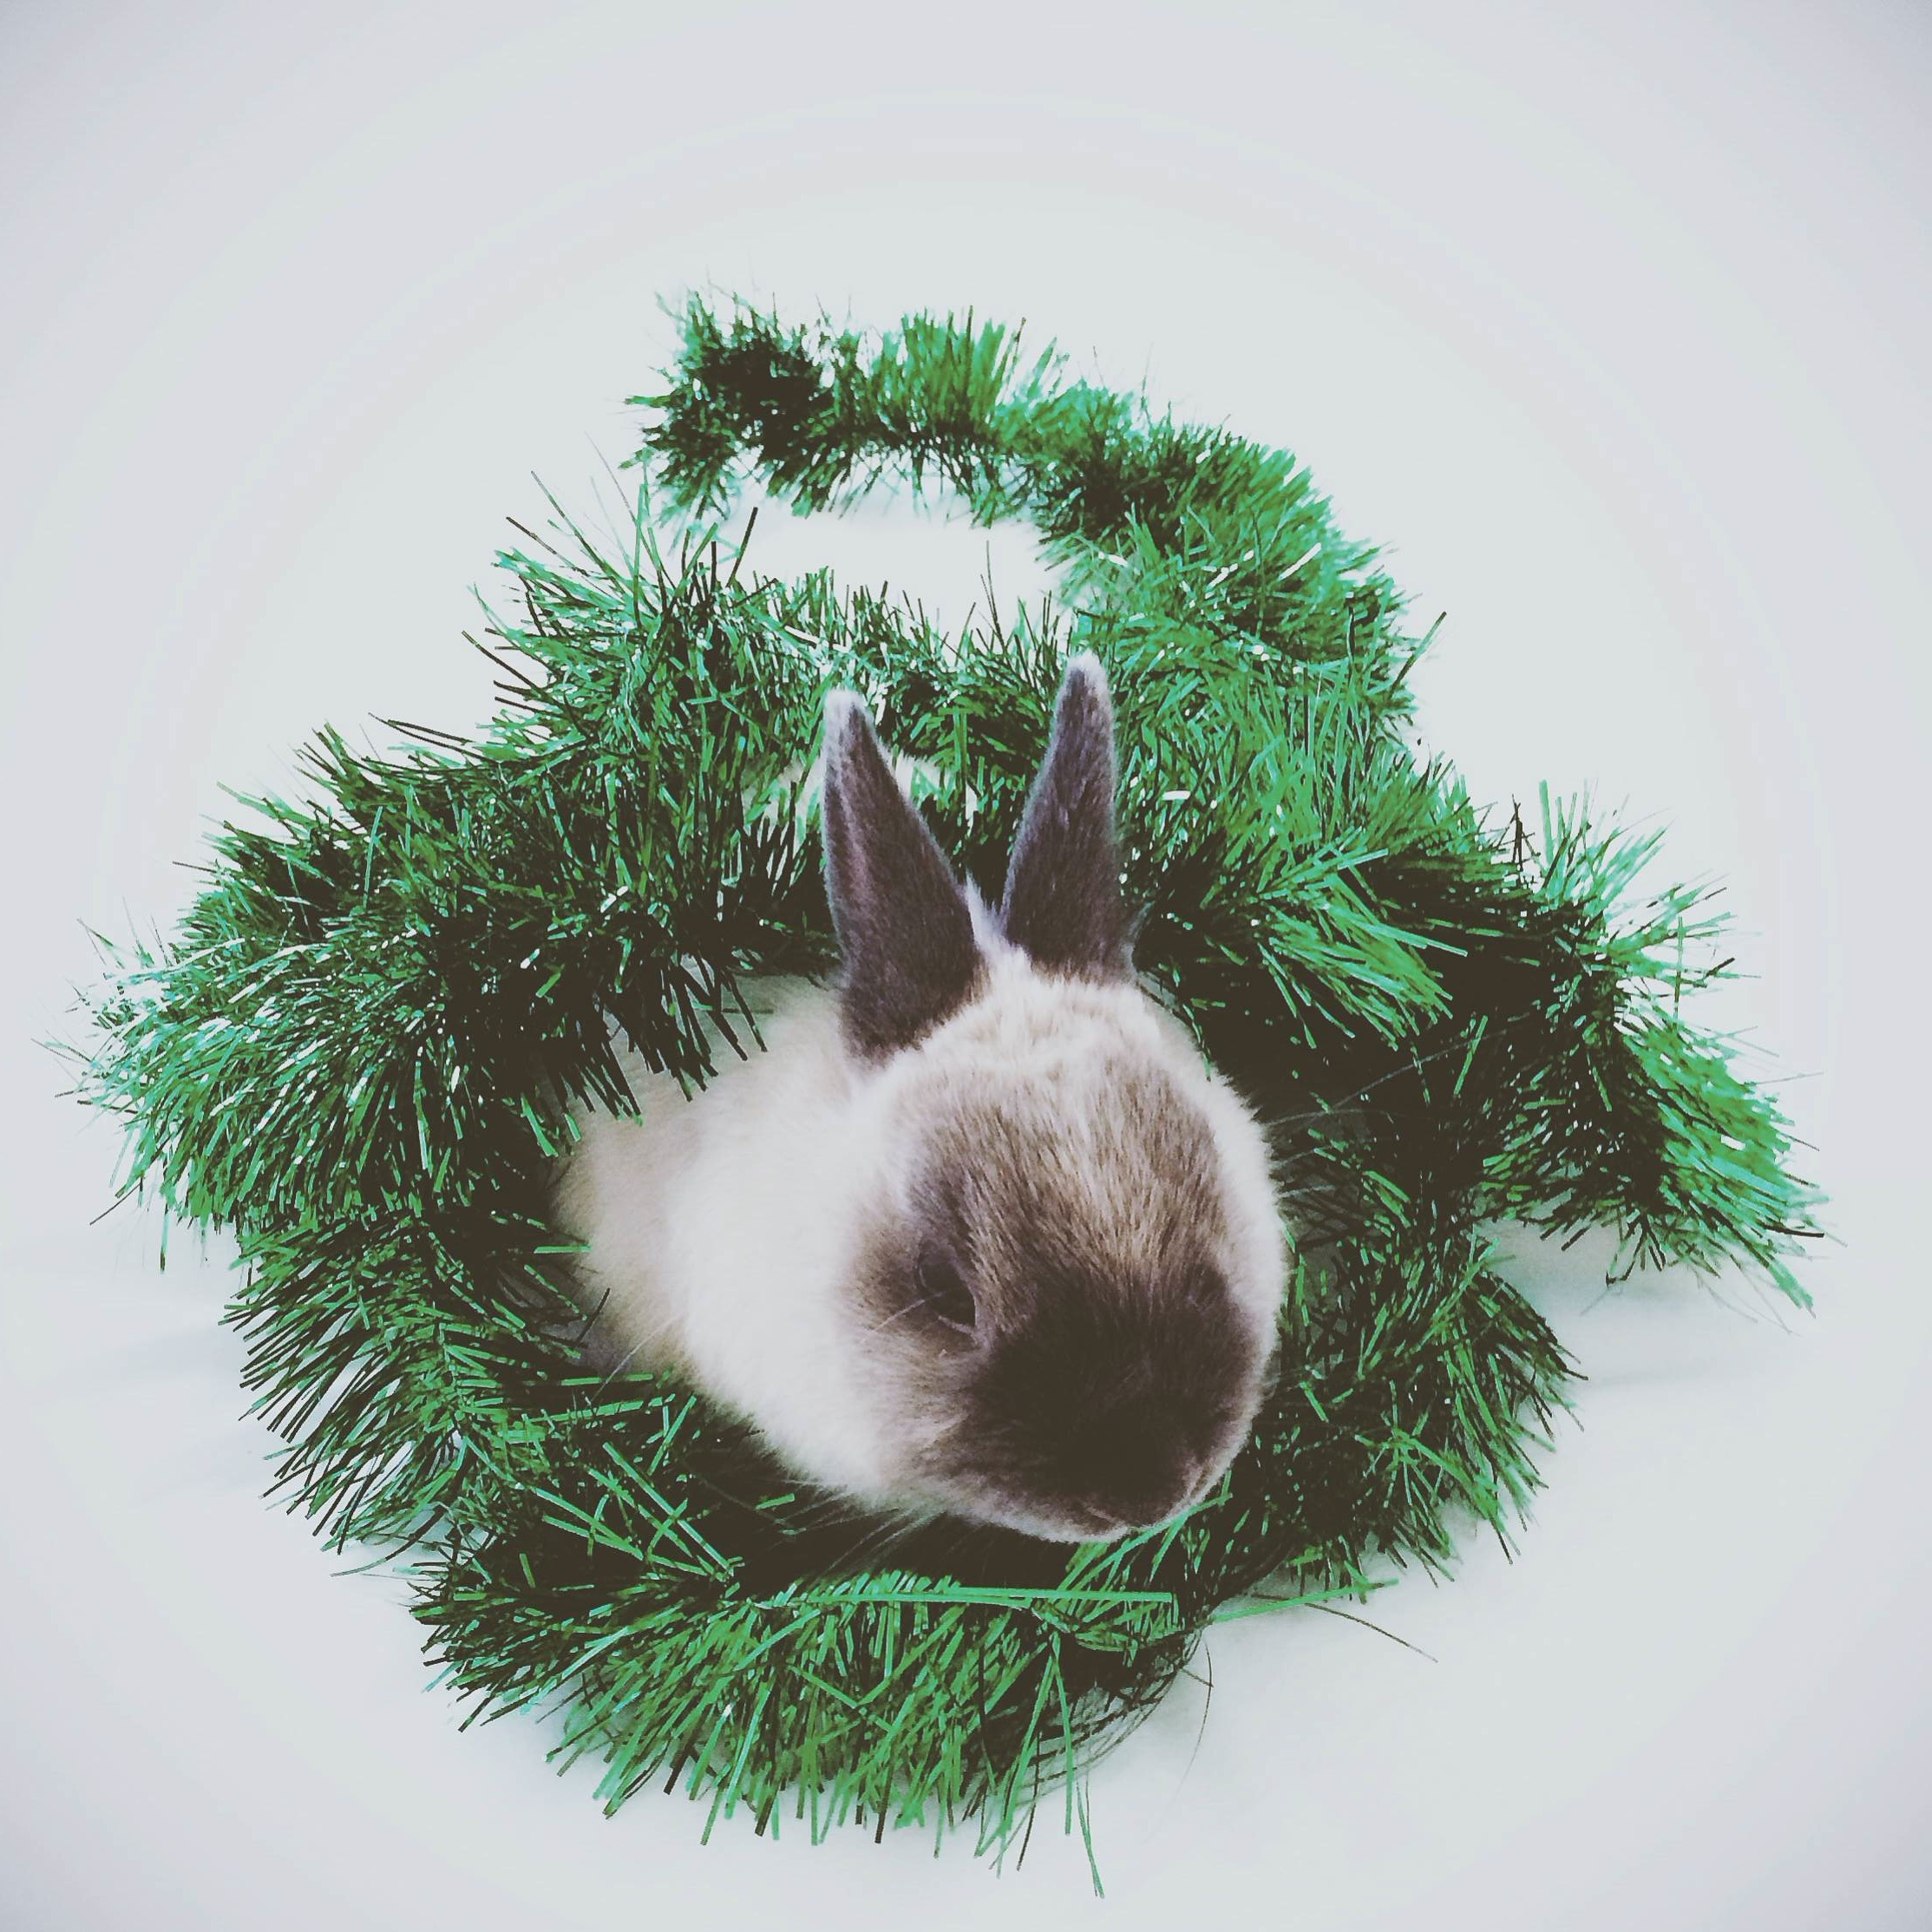 Bunny Is at the Center of a Tinsel Wreath